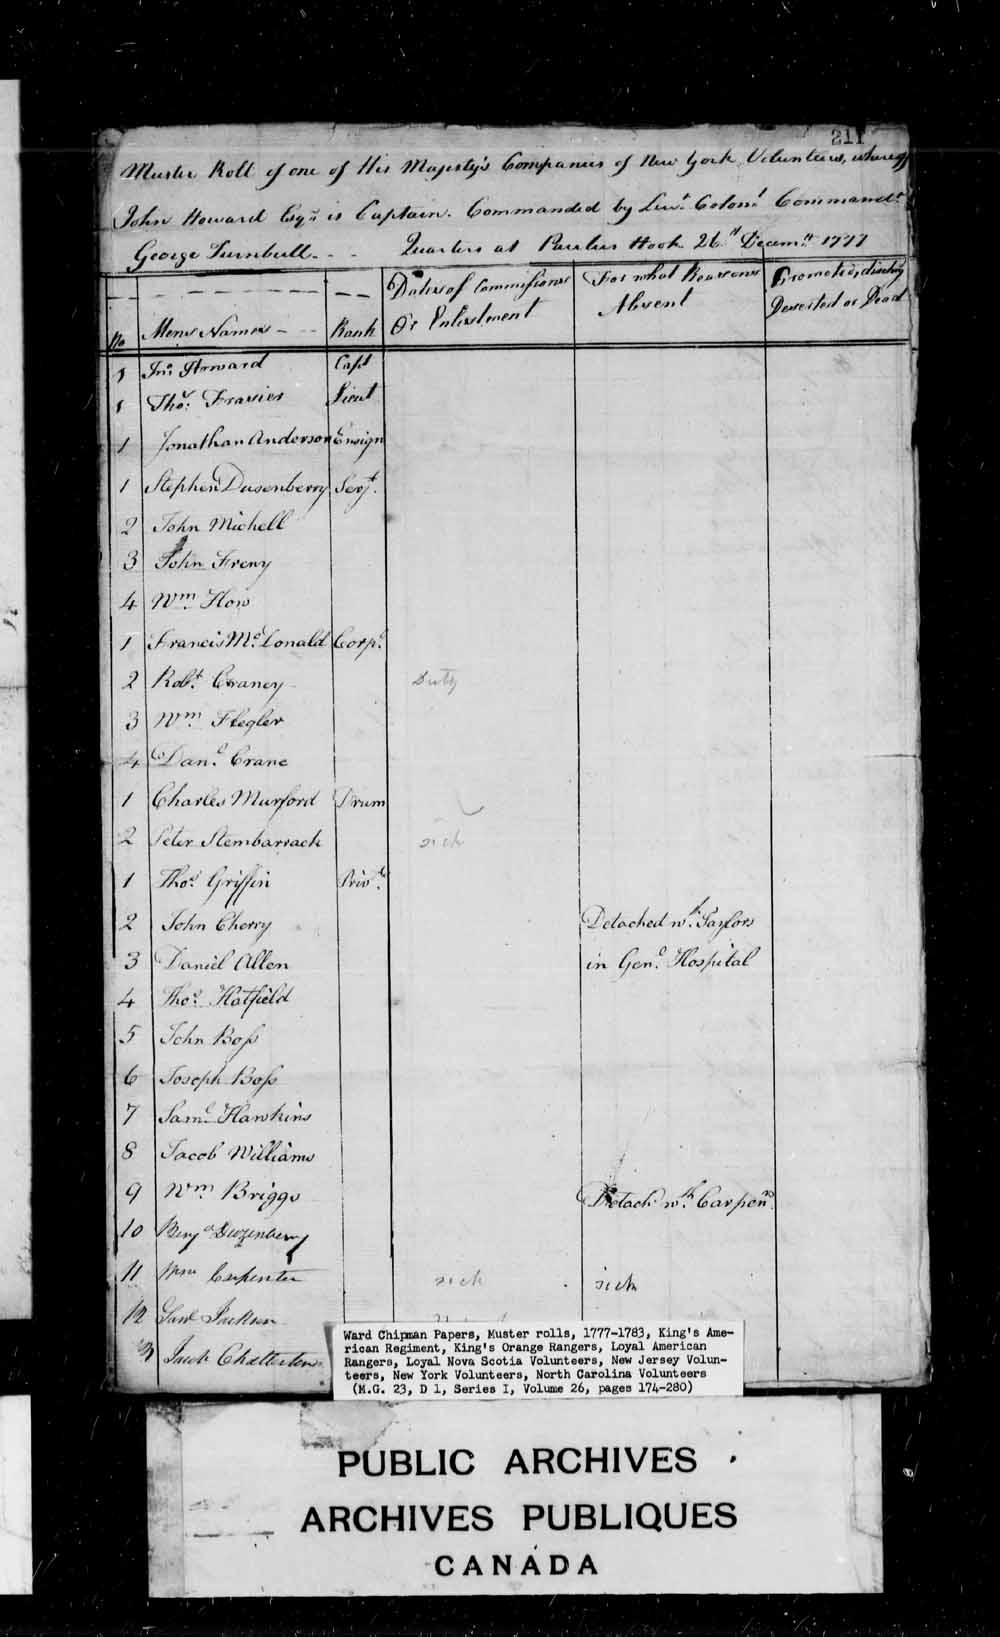 Muster Roll of one of his Majesty's Companies of New York Volunteers where of John Stewart is Captain commanded by Lieutenant Colonel Commandant George Turnbull.